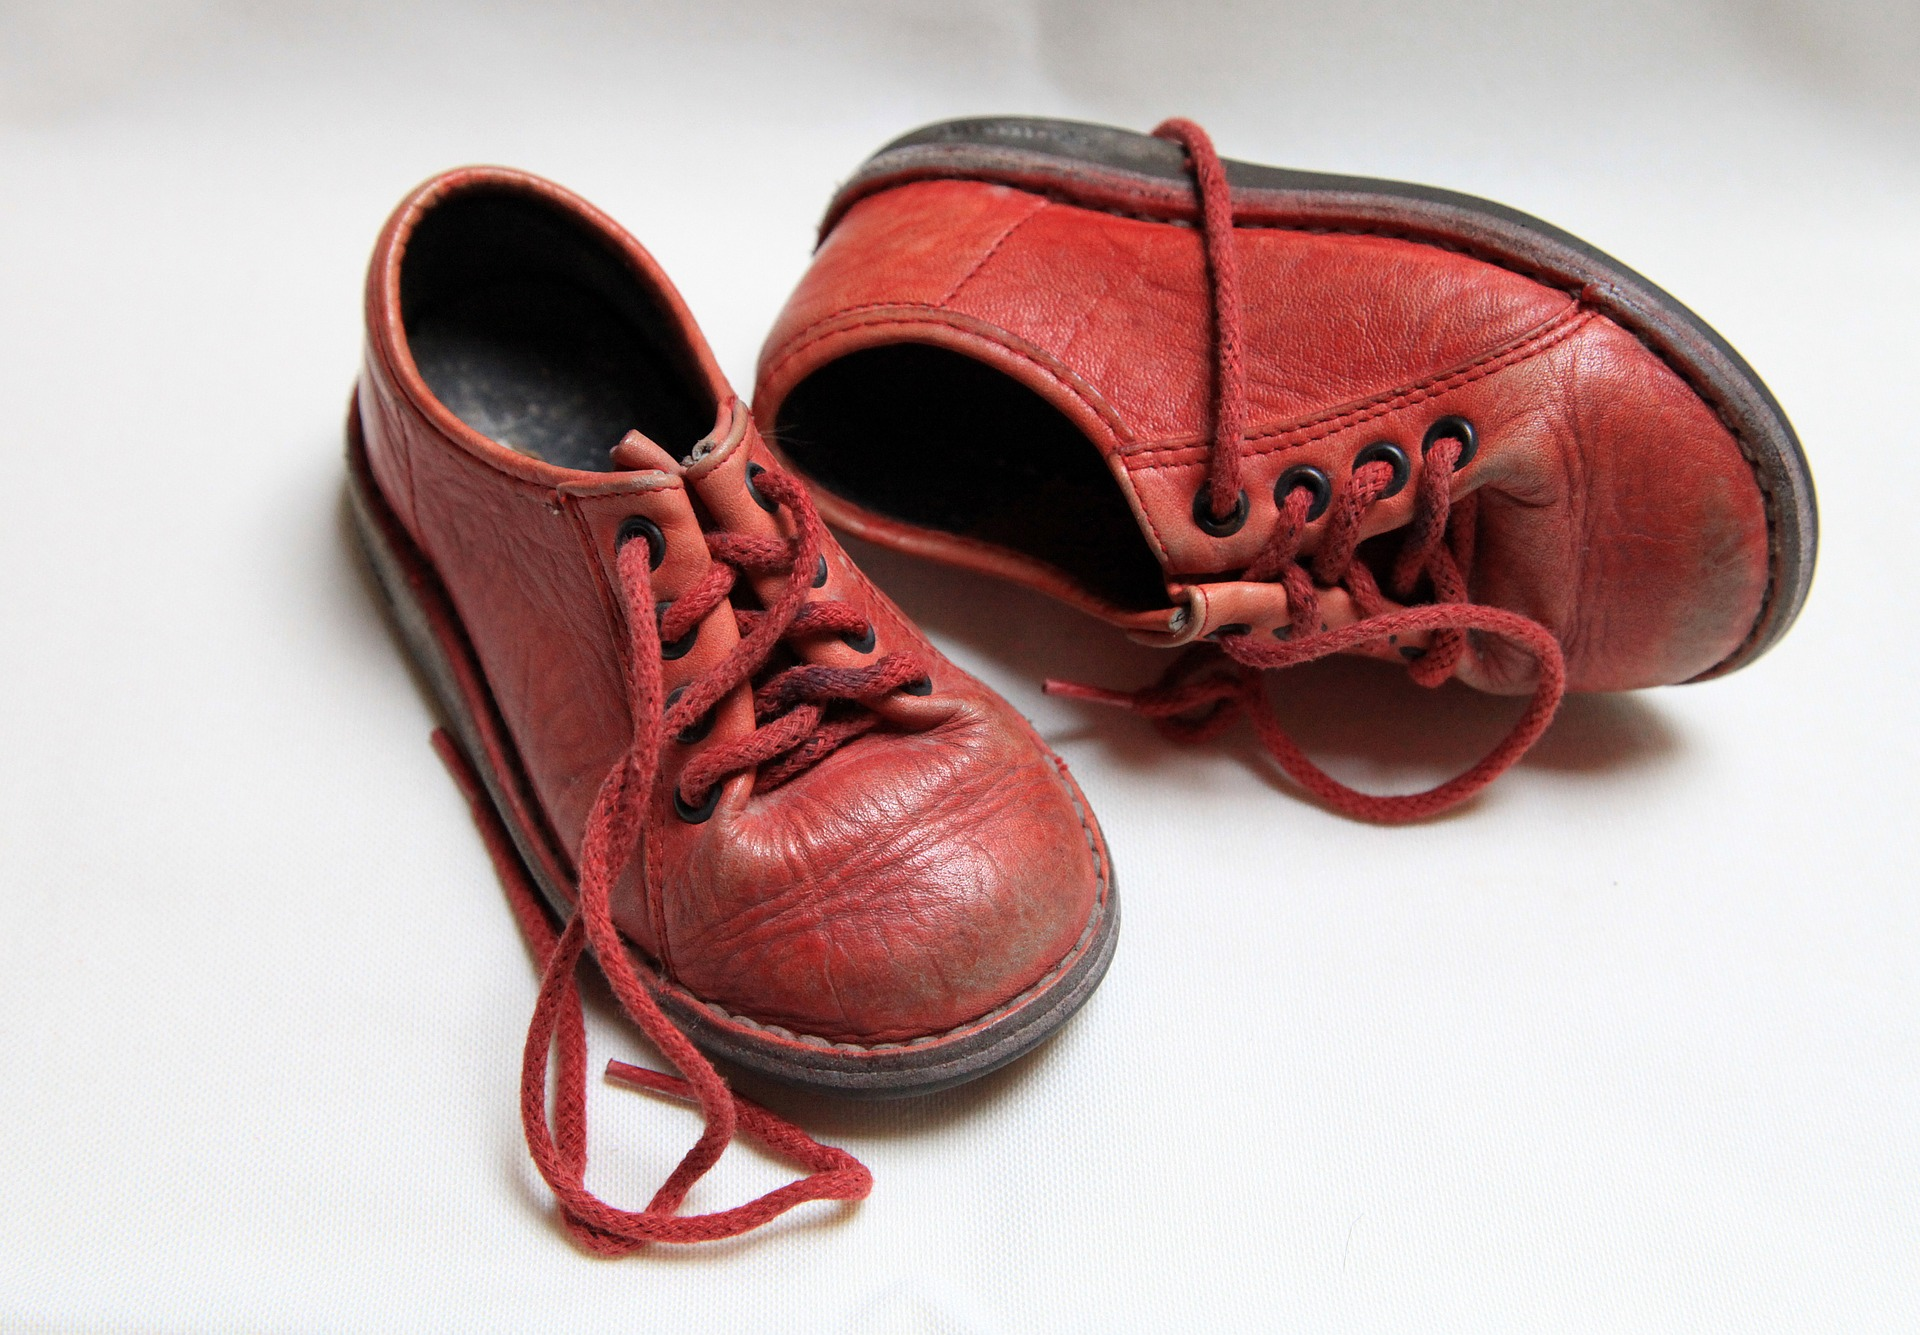 childrens-shoes-687958_1920